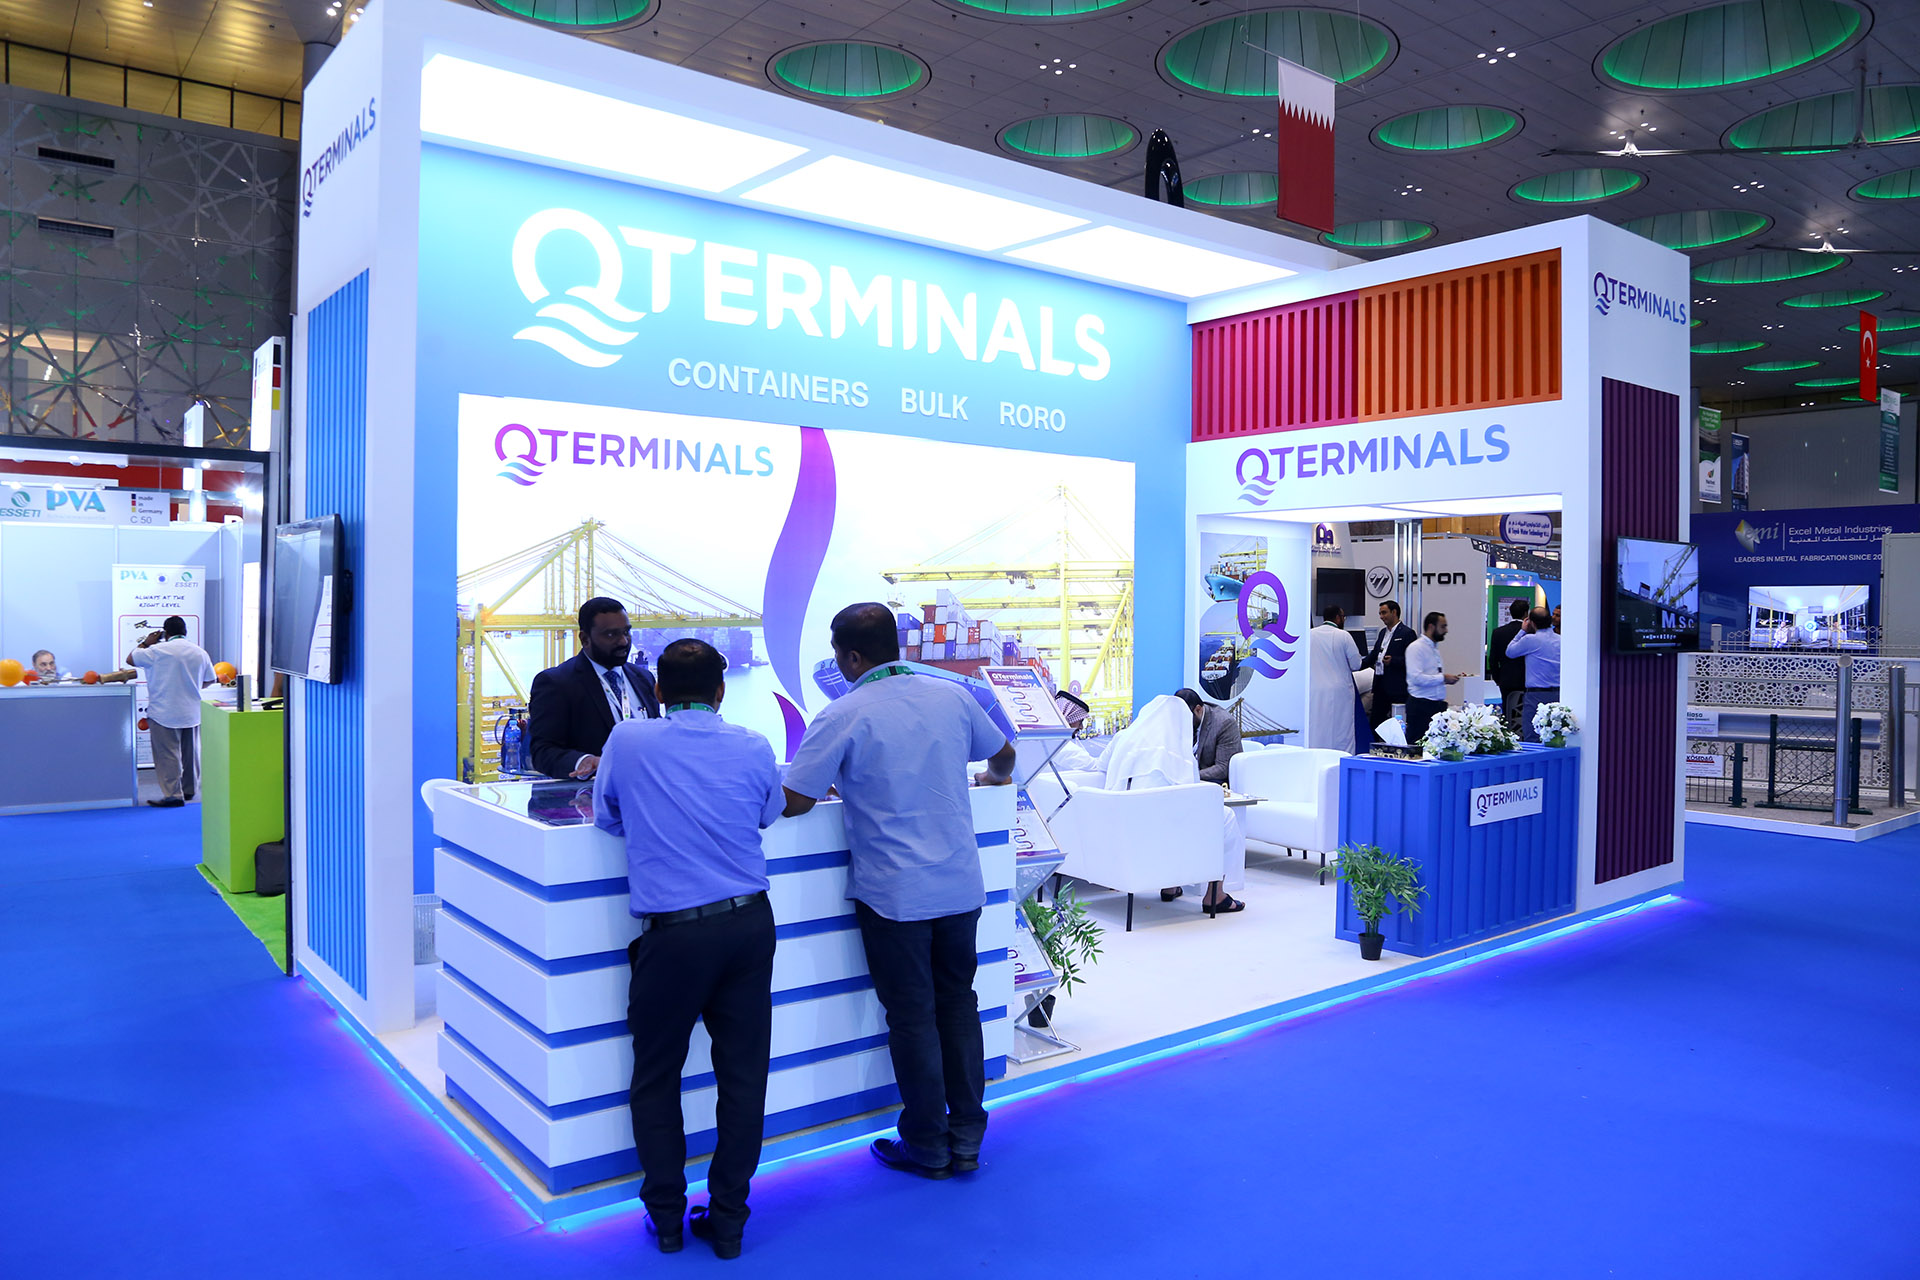 Award winning exhibition stand for QTerminals at Project Qatar, designed and fabricated by ME Visual